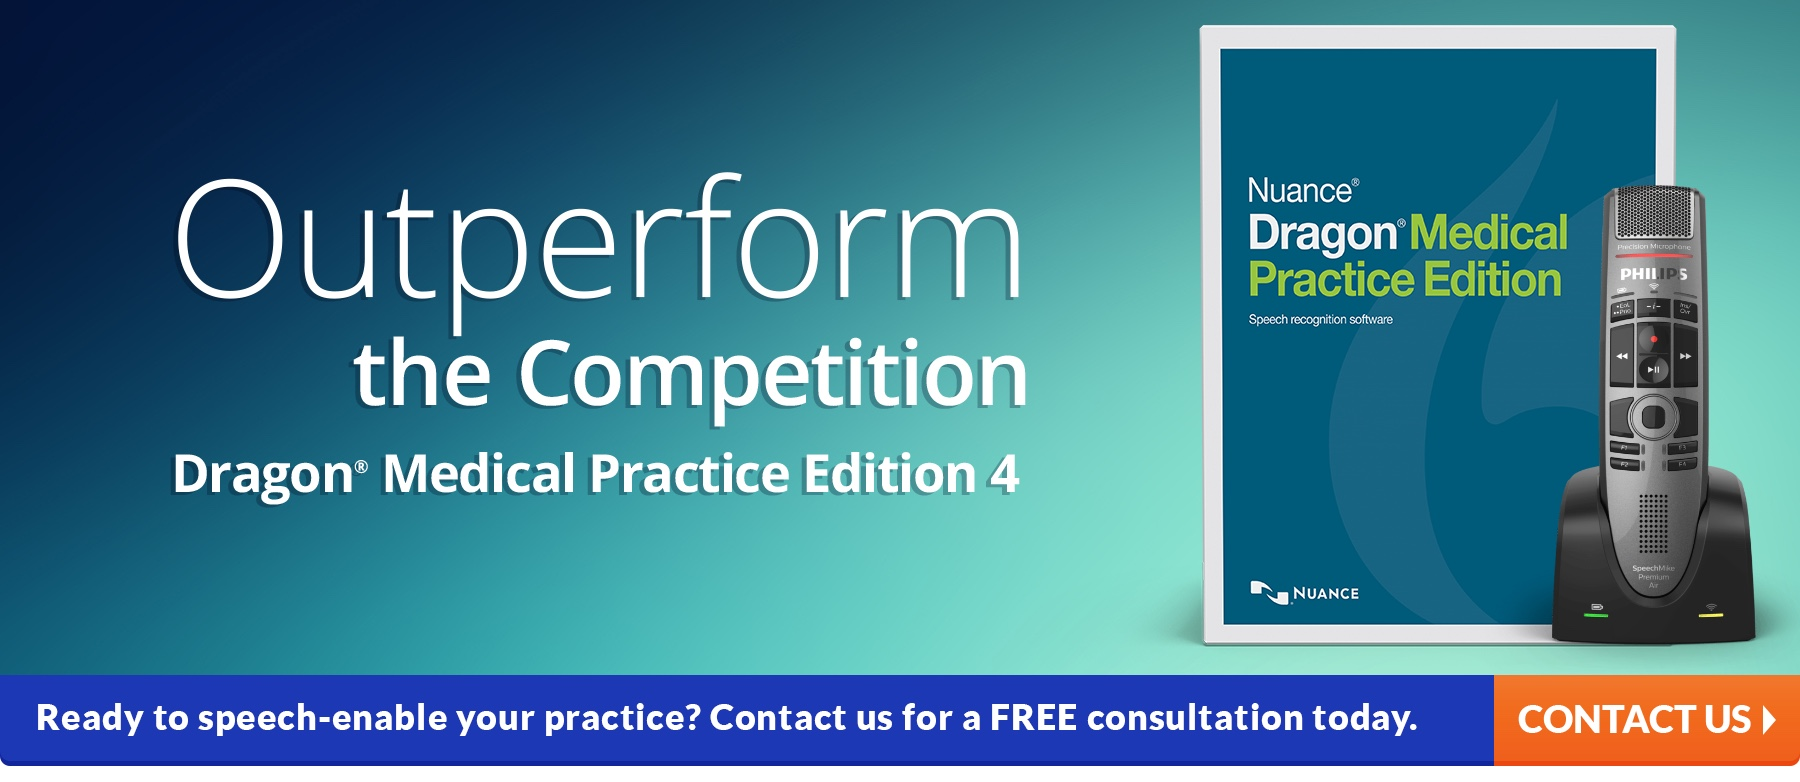 Outperform the competition - Dragon Medical Practice Edition 4